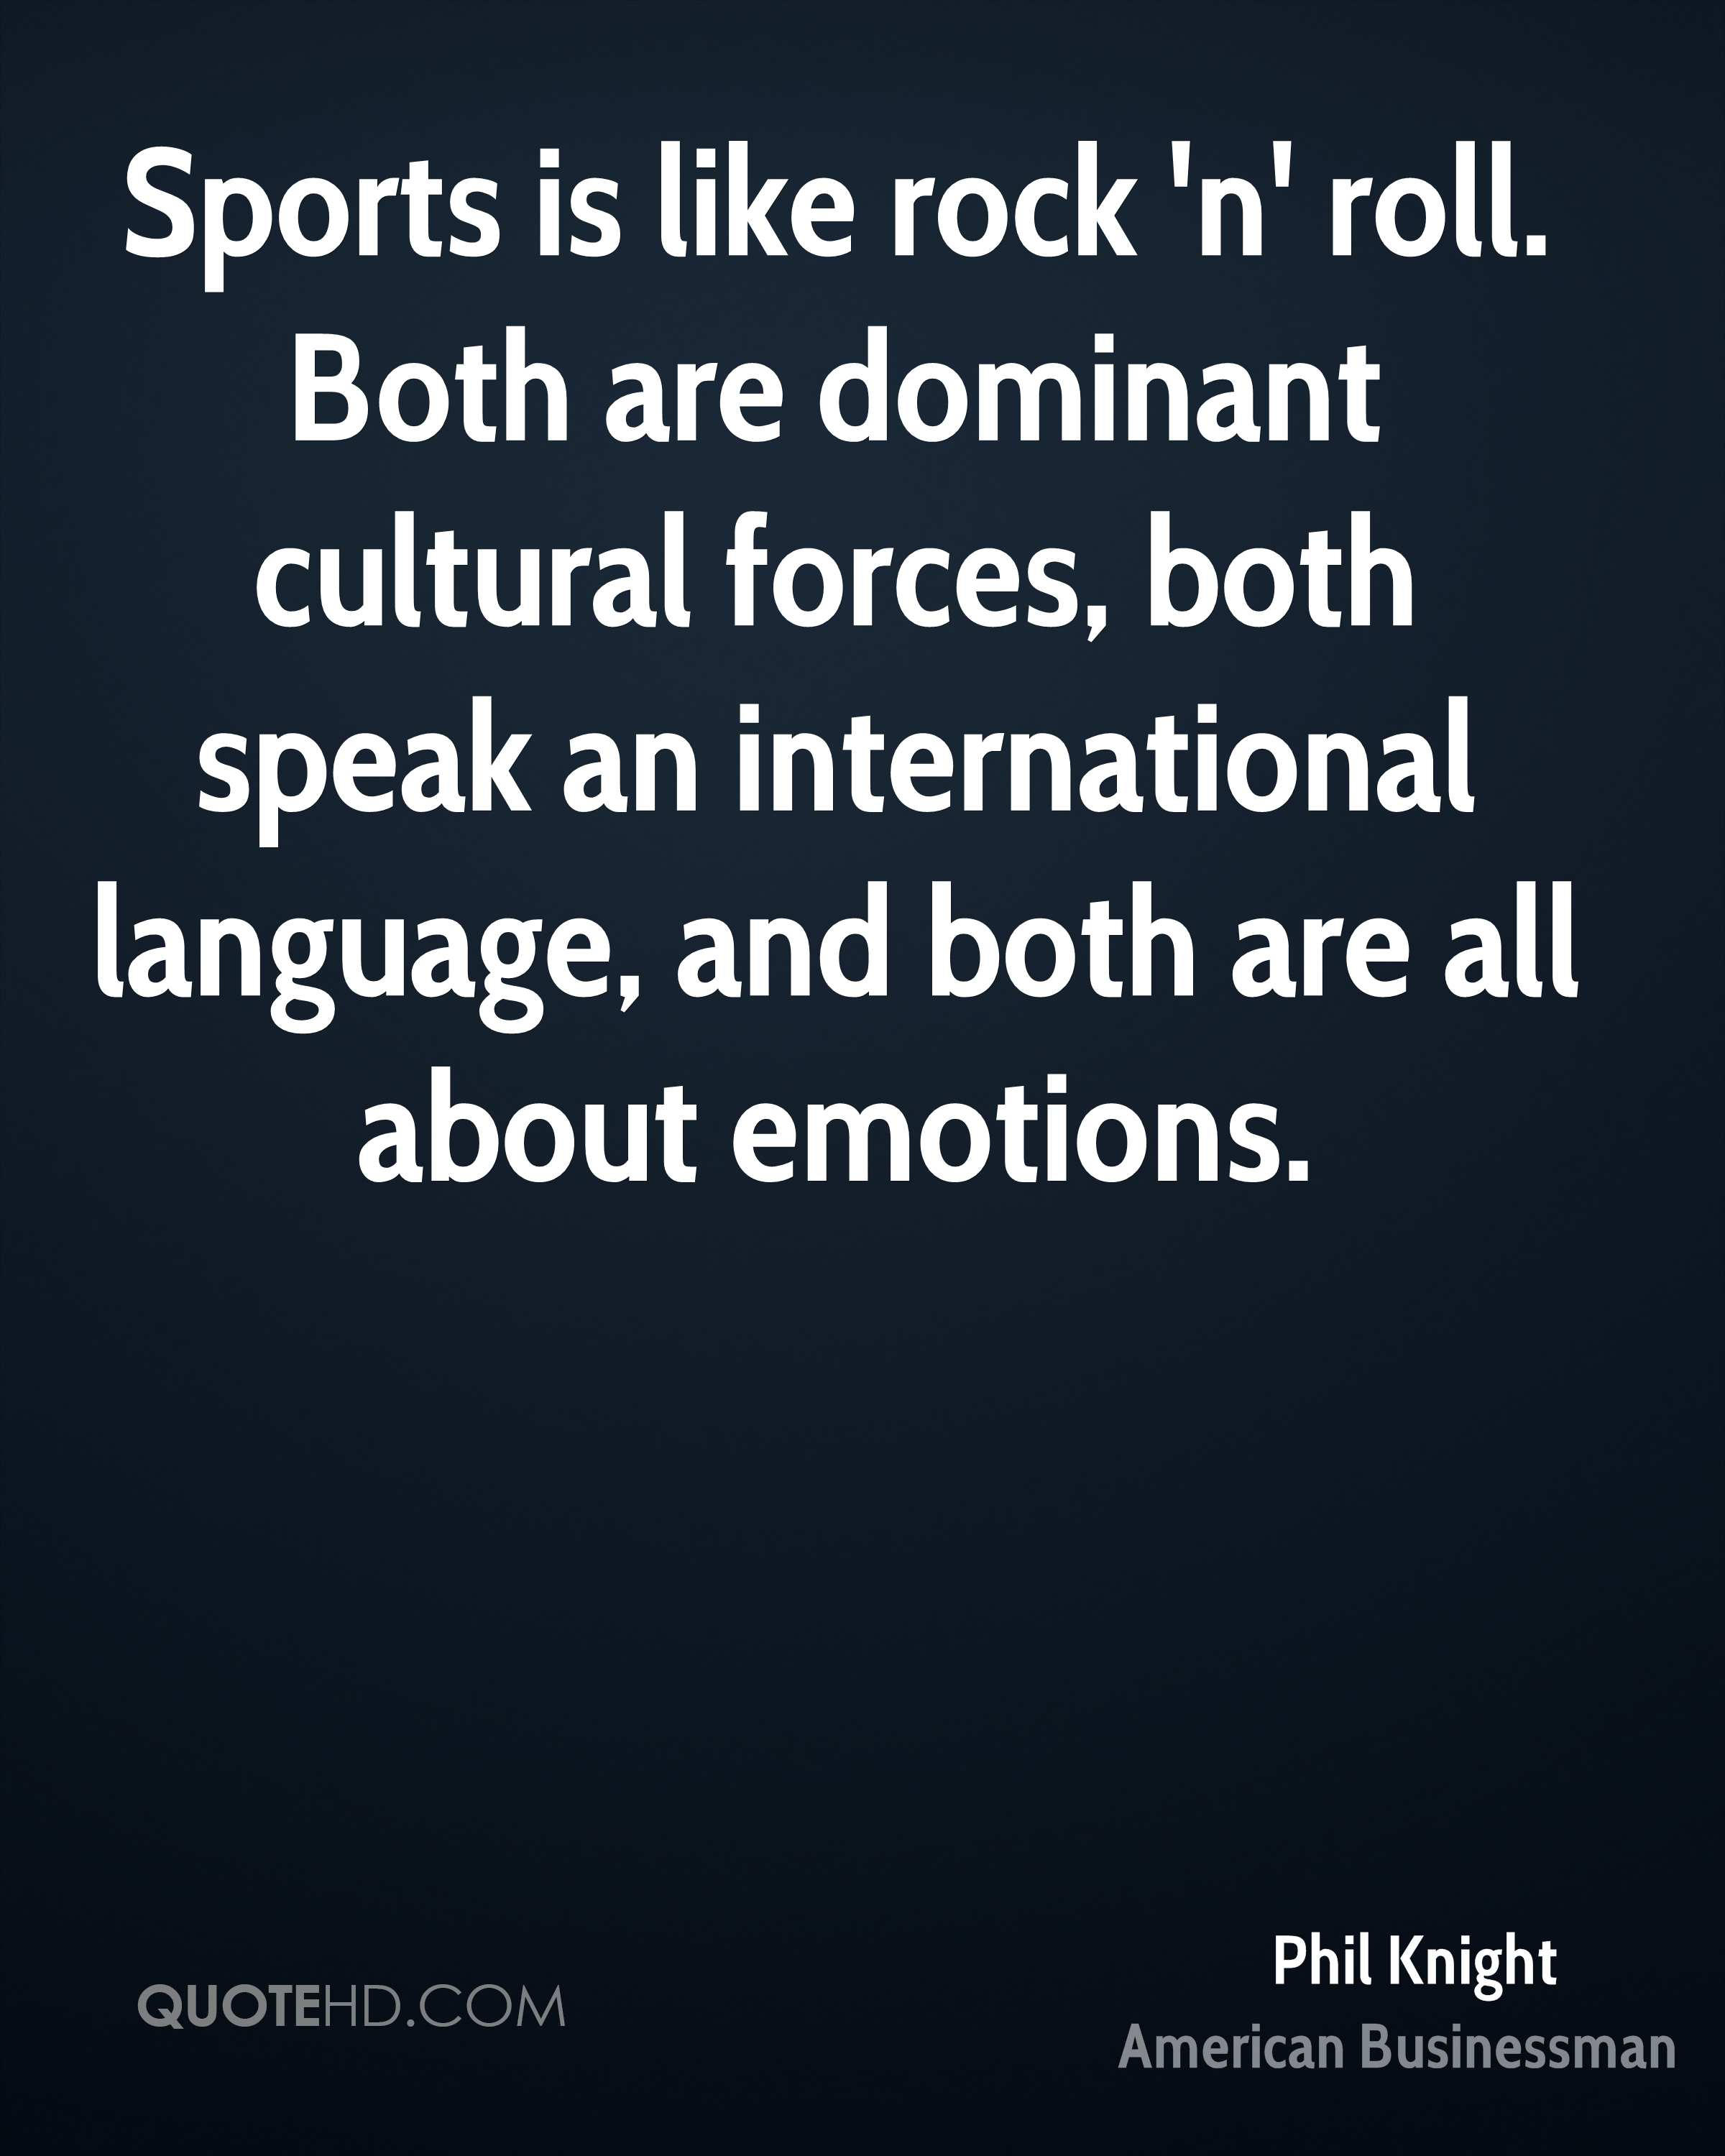 Sports is like rock 'n' roll. Both are dominant cultural forces, both speak an international language, and both are all about emotions.